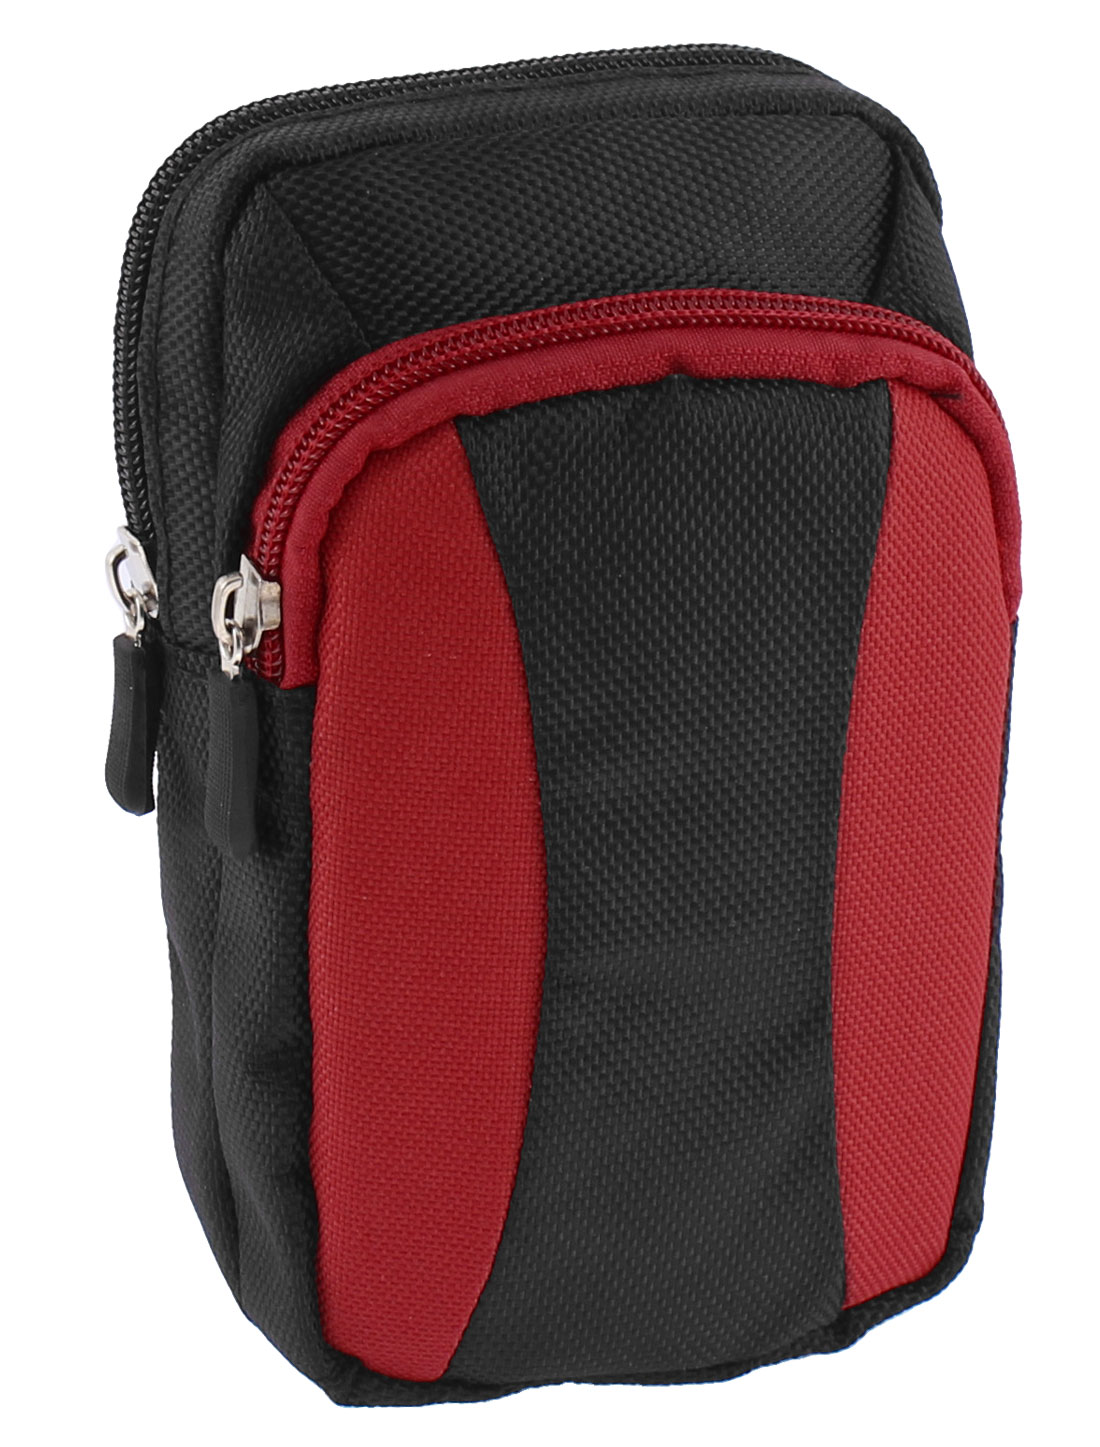 Outdoor Travel Zipper Closure Coin Phone Holder Waist Belt Pack Bag Wallet Red Black